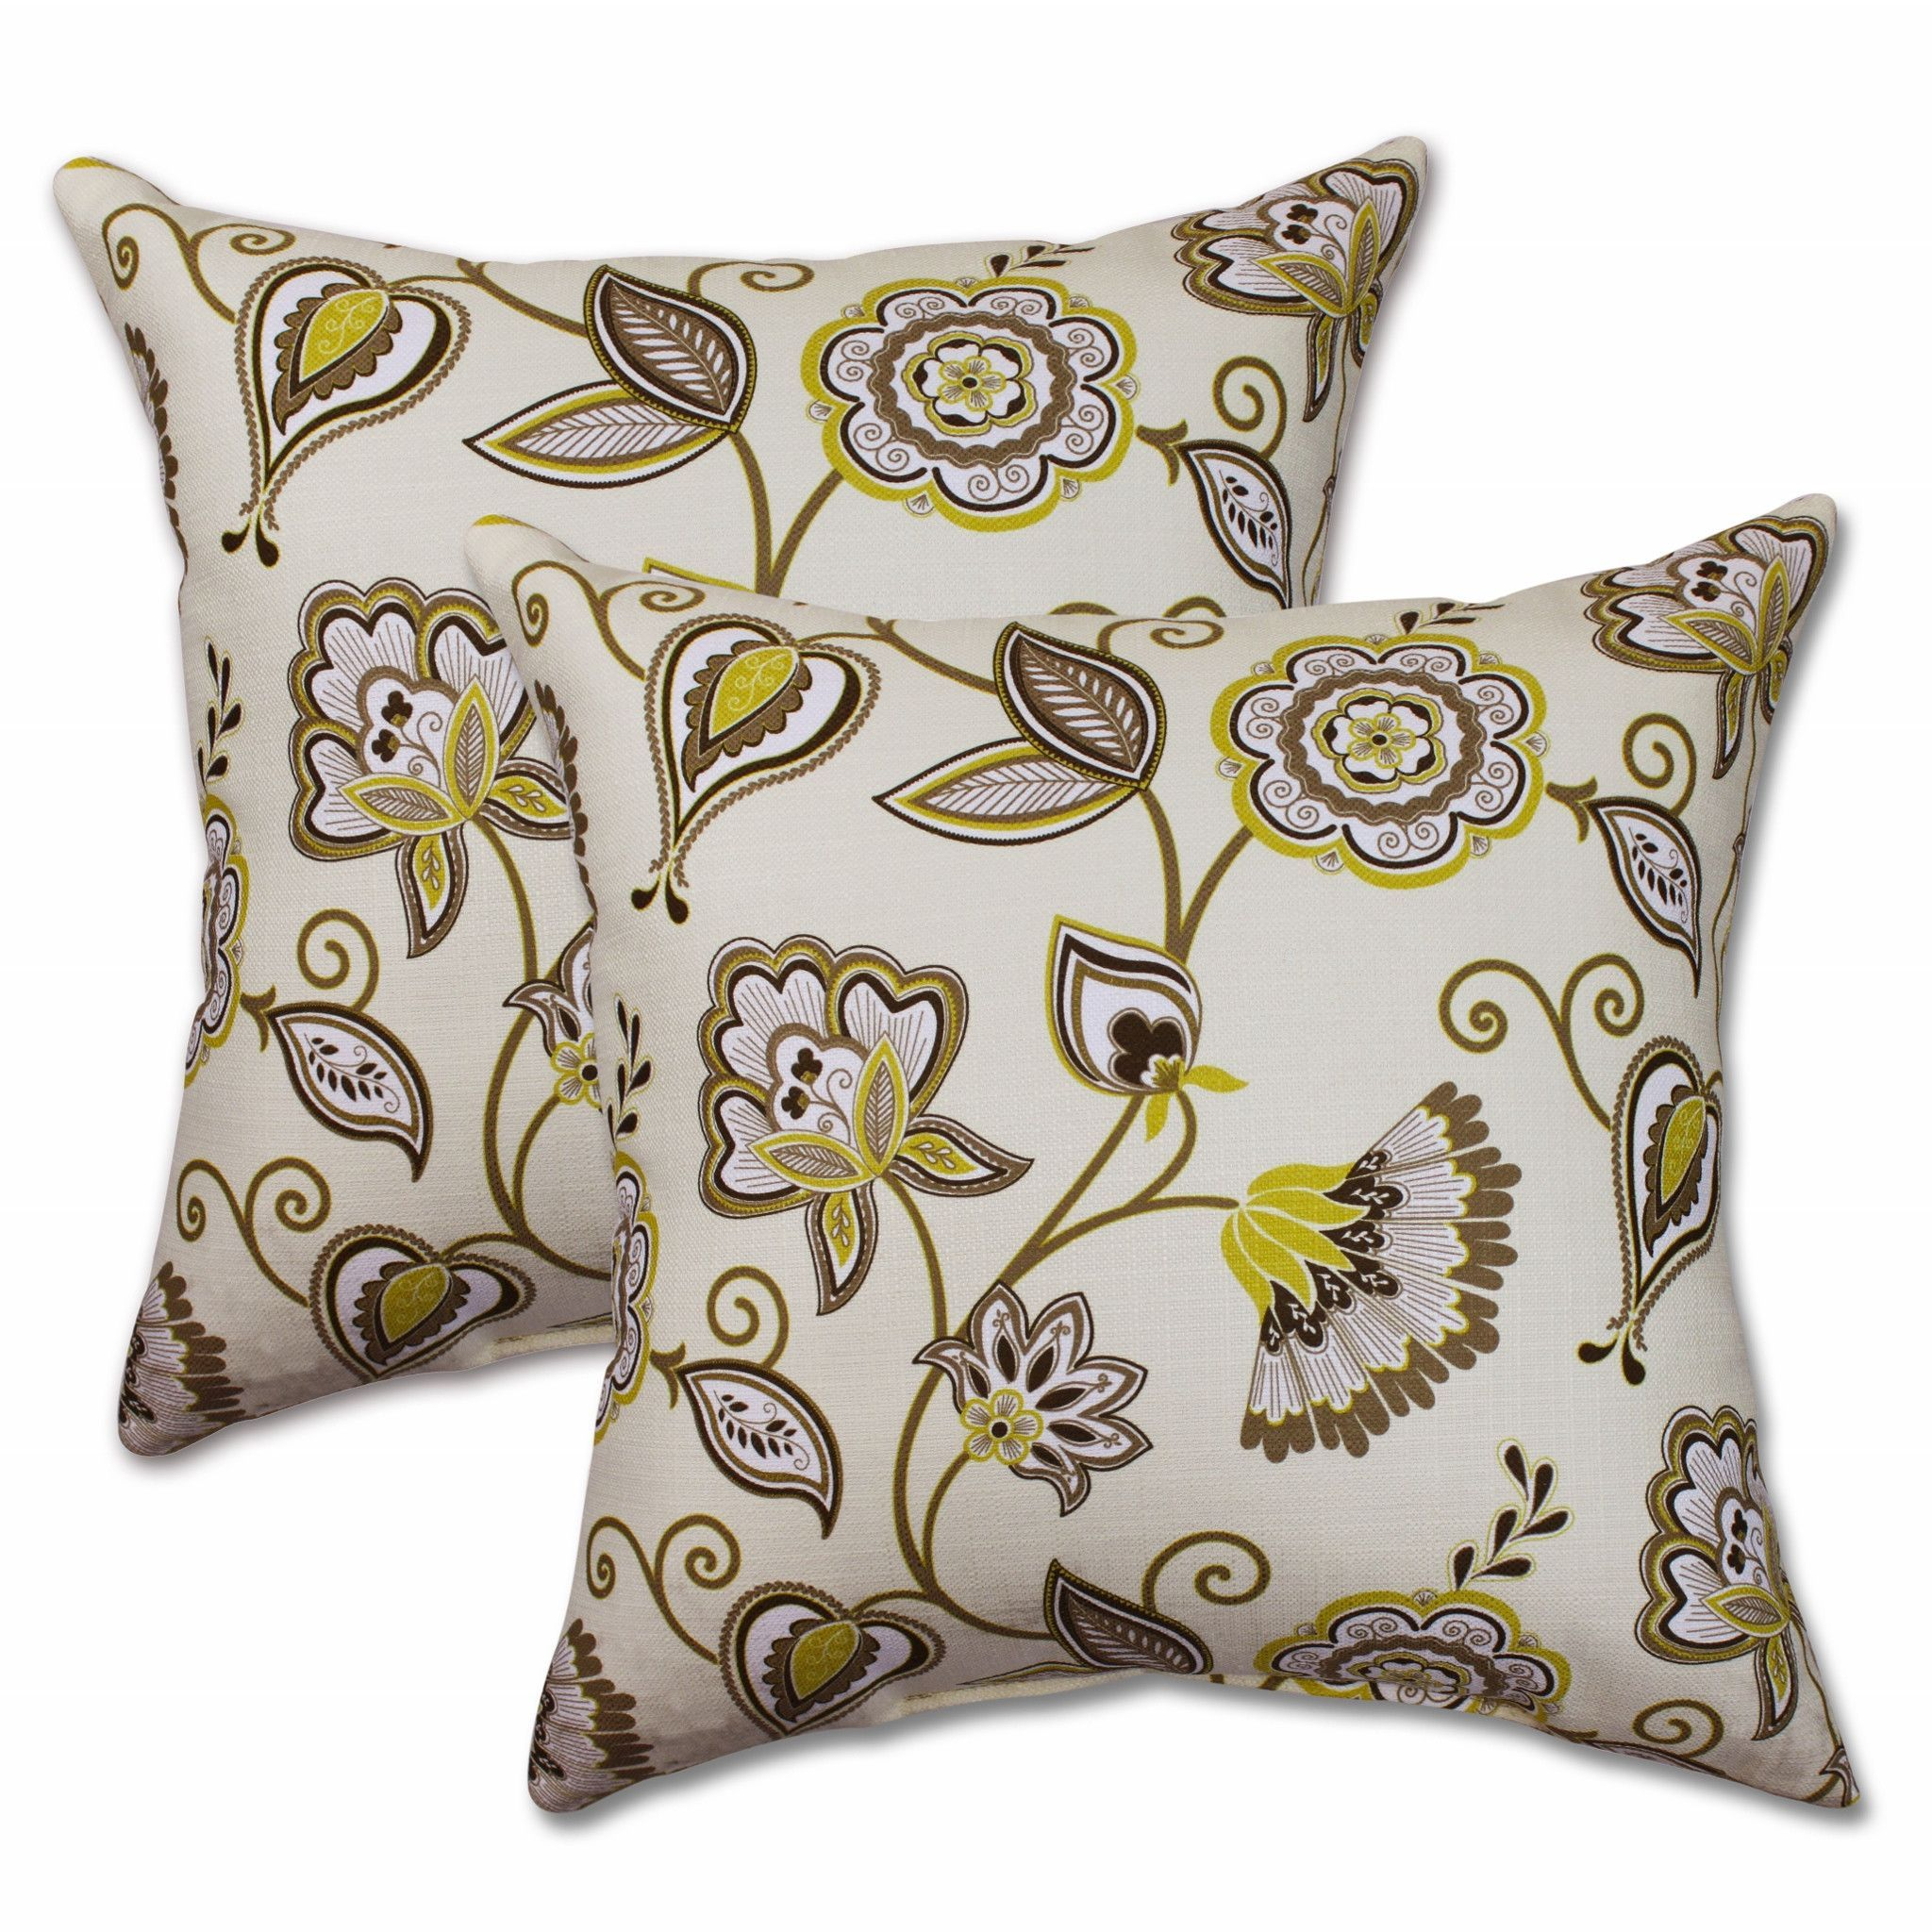 embroidered sofa flower pillows couch throw yellow accent abstract purple cushion decorative modern cover matisse cushions gold pillow contemporary